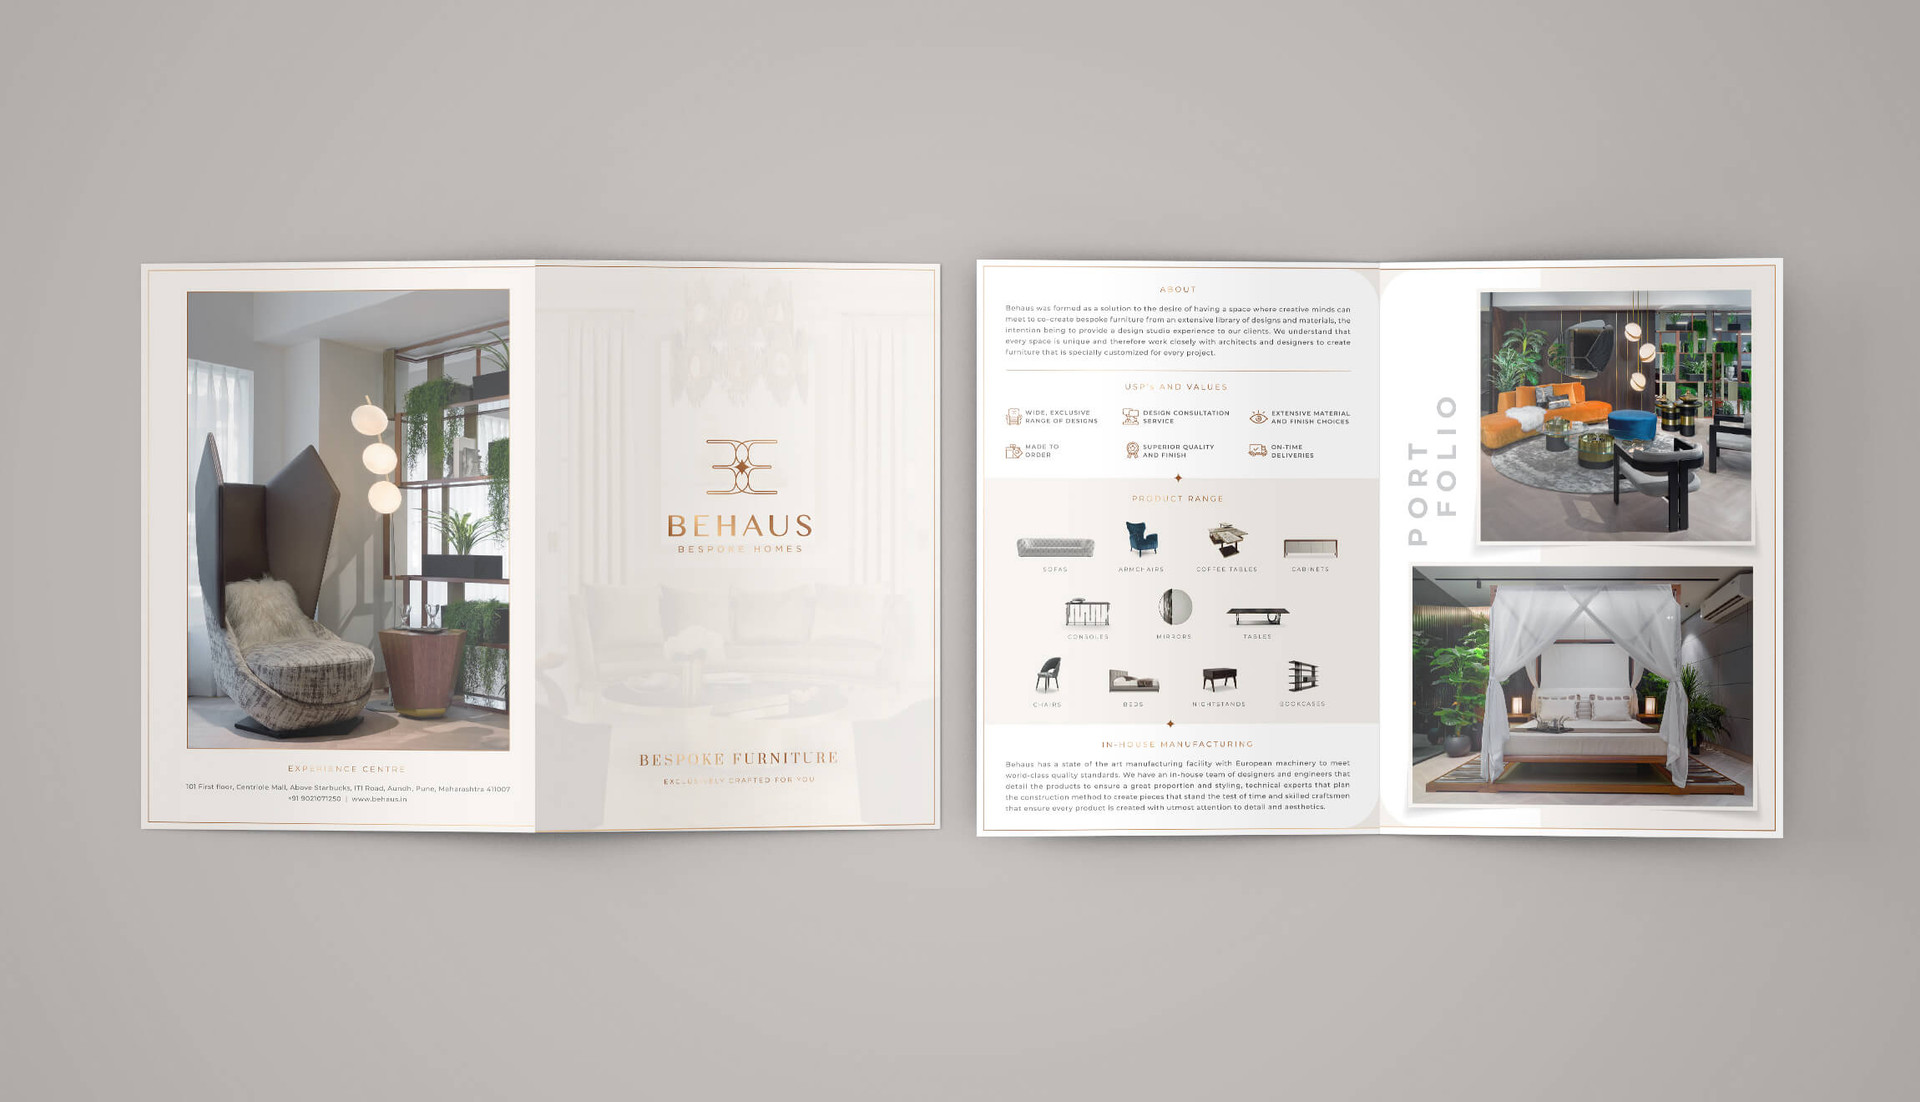 Behaus Brochure mockupp.jpg